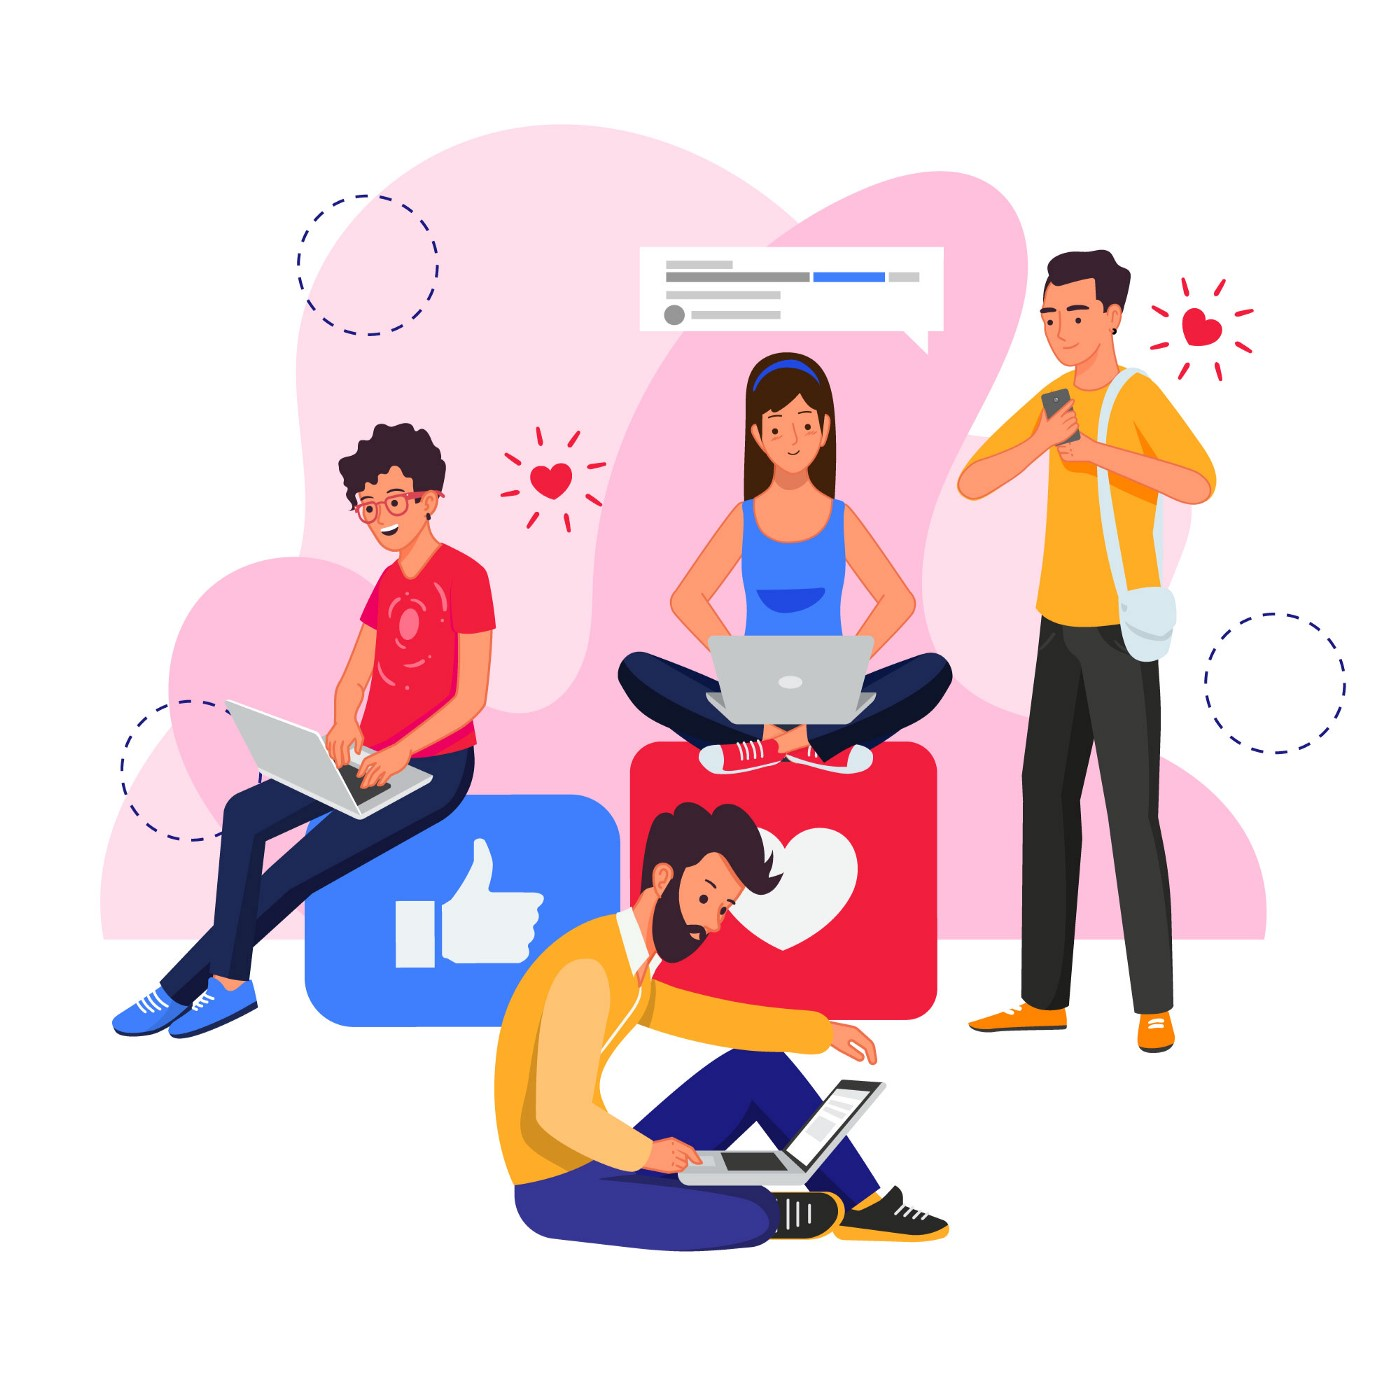 Illustration of four people, three on their laptops and one using a phone, doing various tasks related to social media.